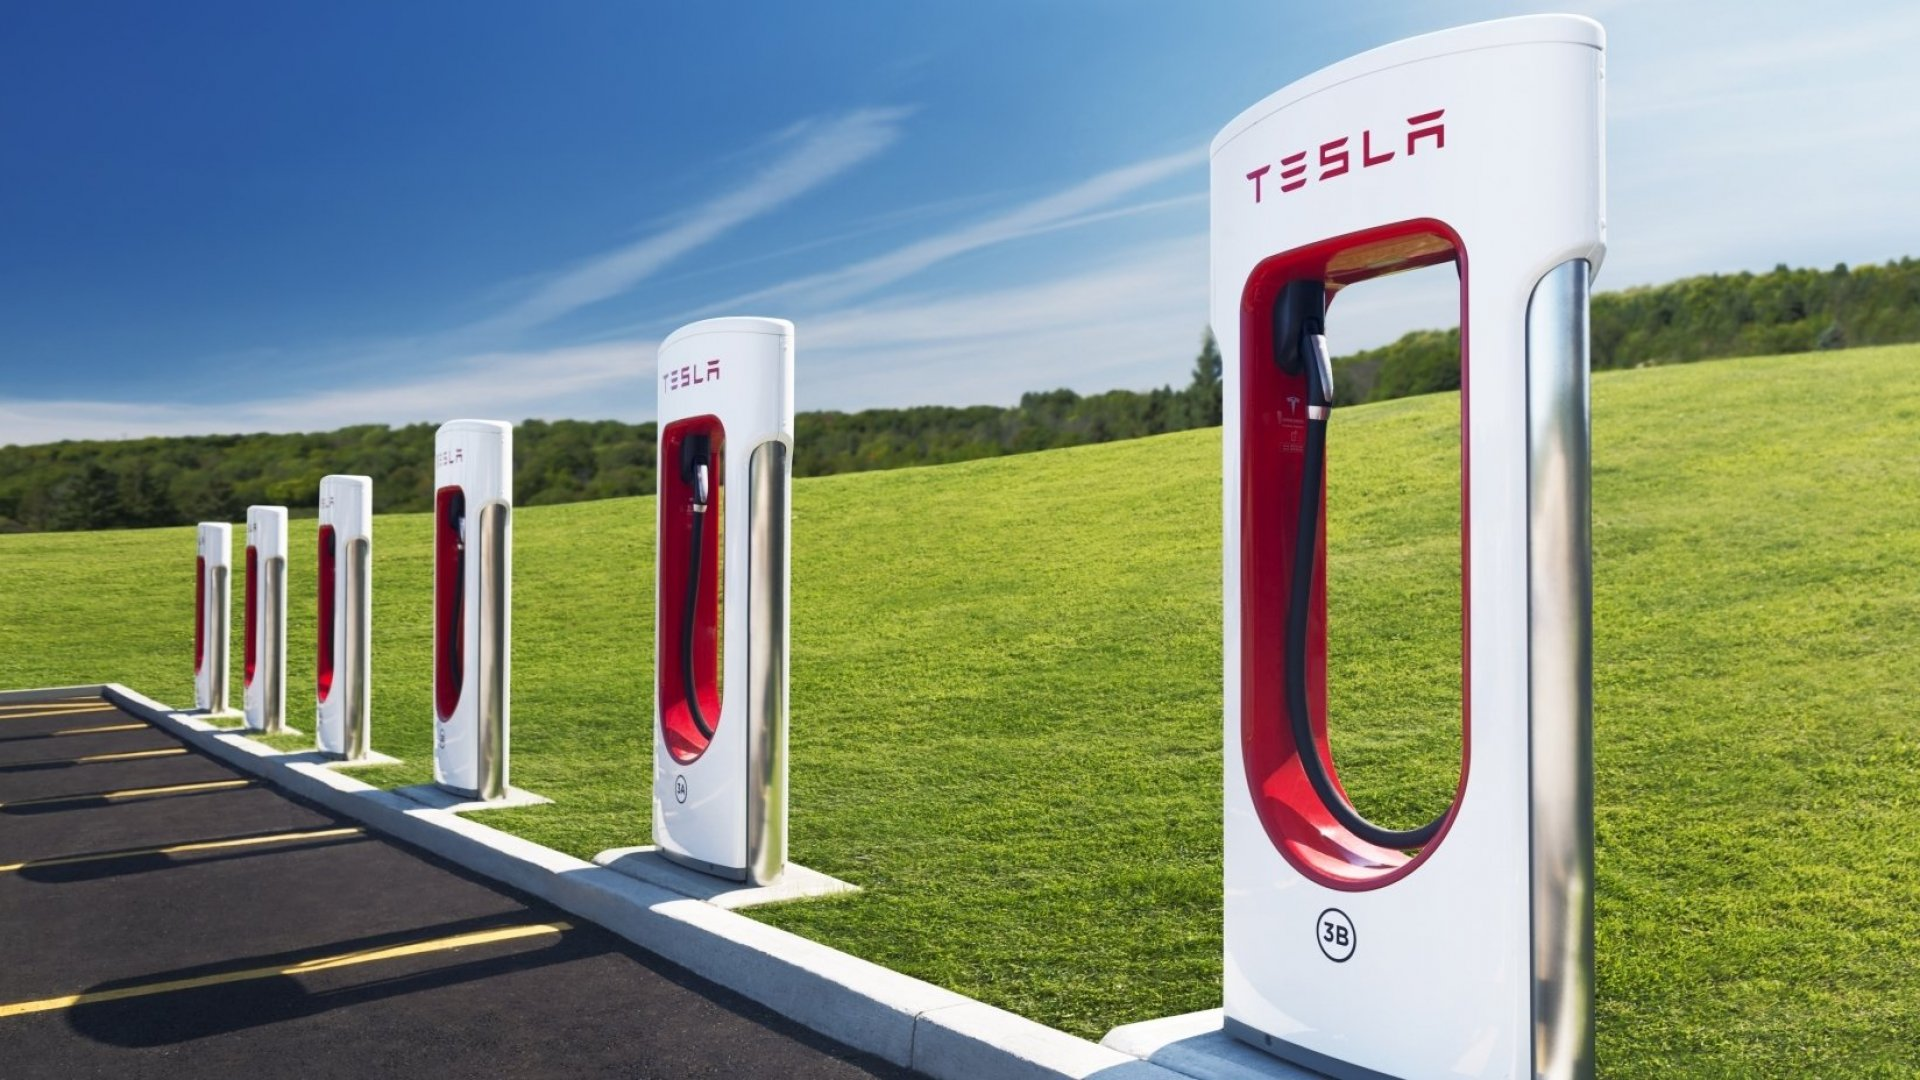 Elon Musk Just Announced His Plans for Tesla's New Charging Stations. This Founder Has Much Bigger Ideas for Them